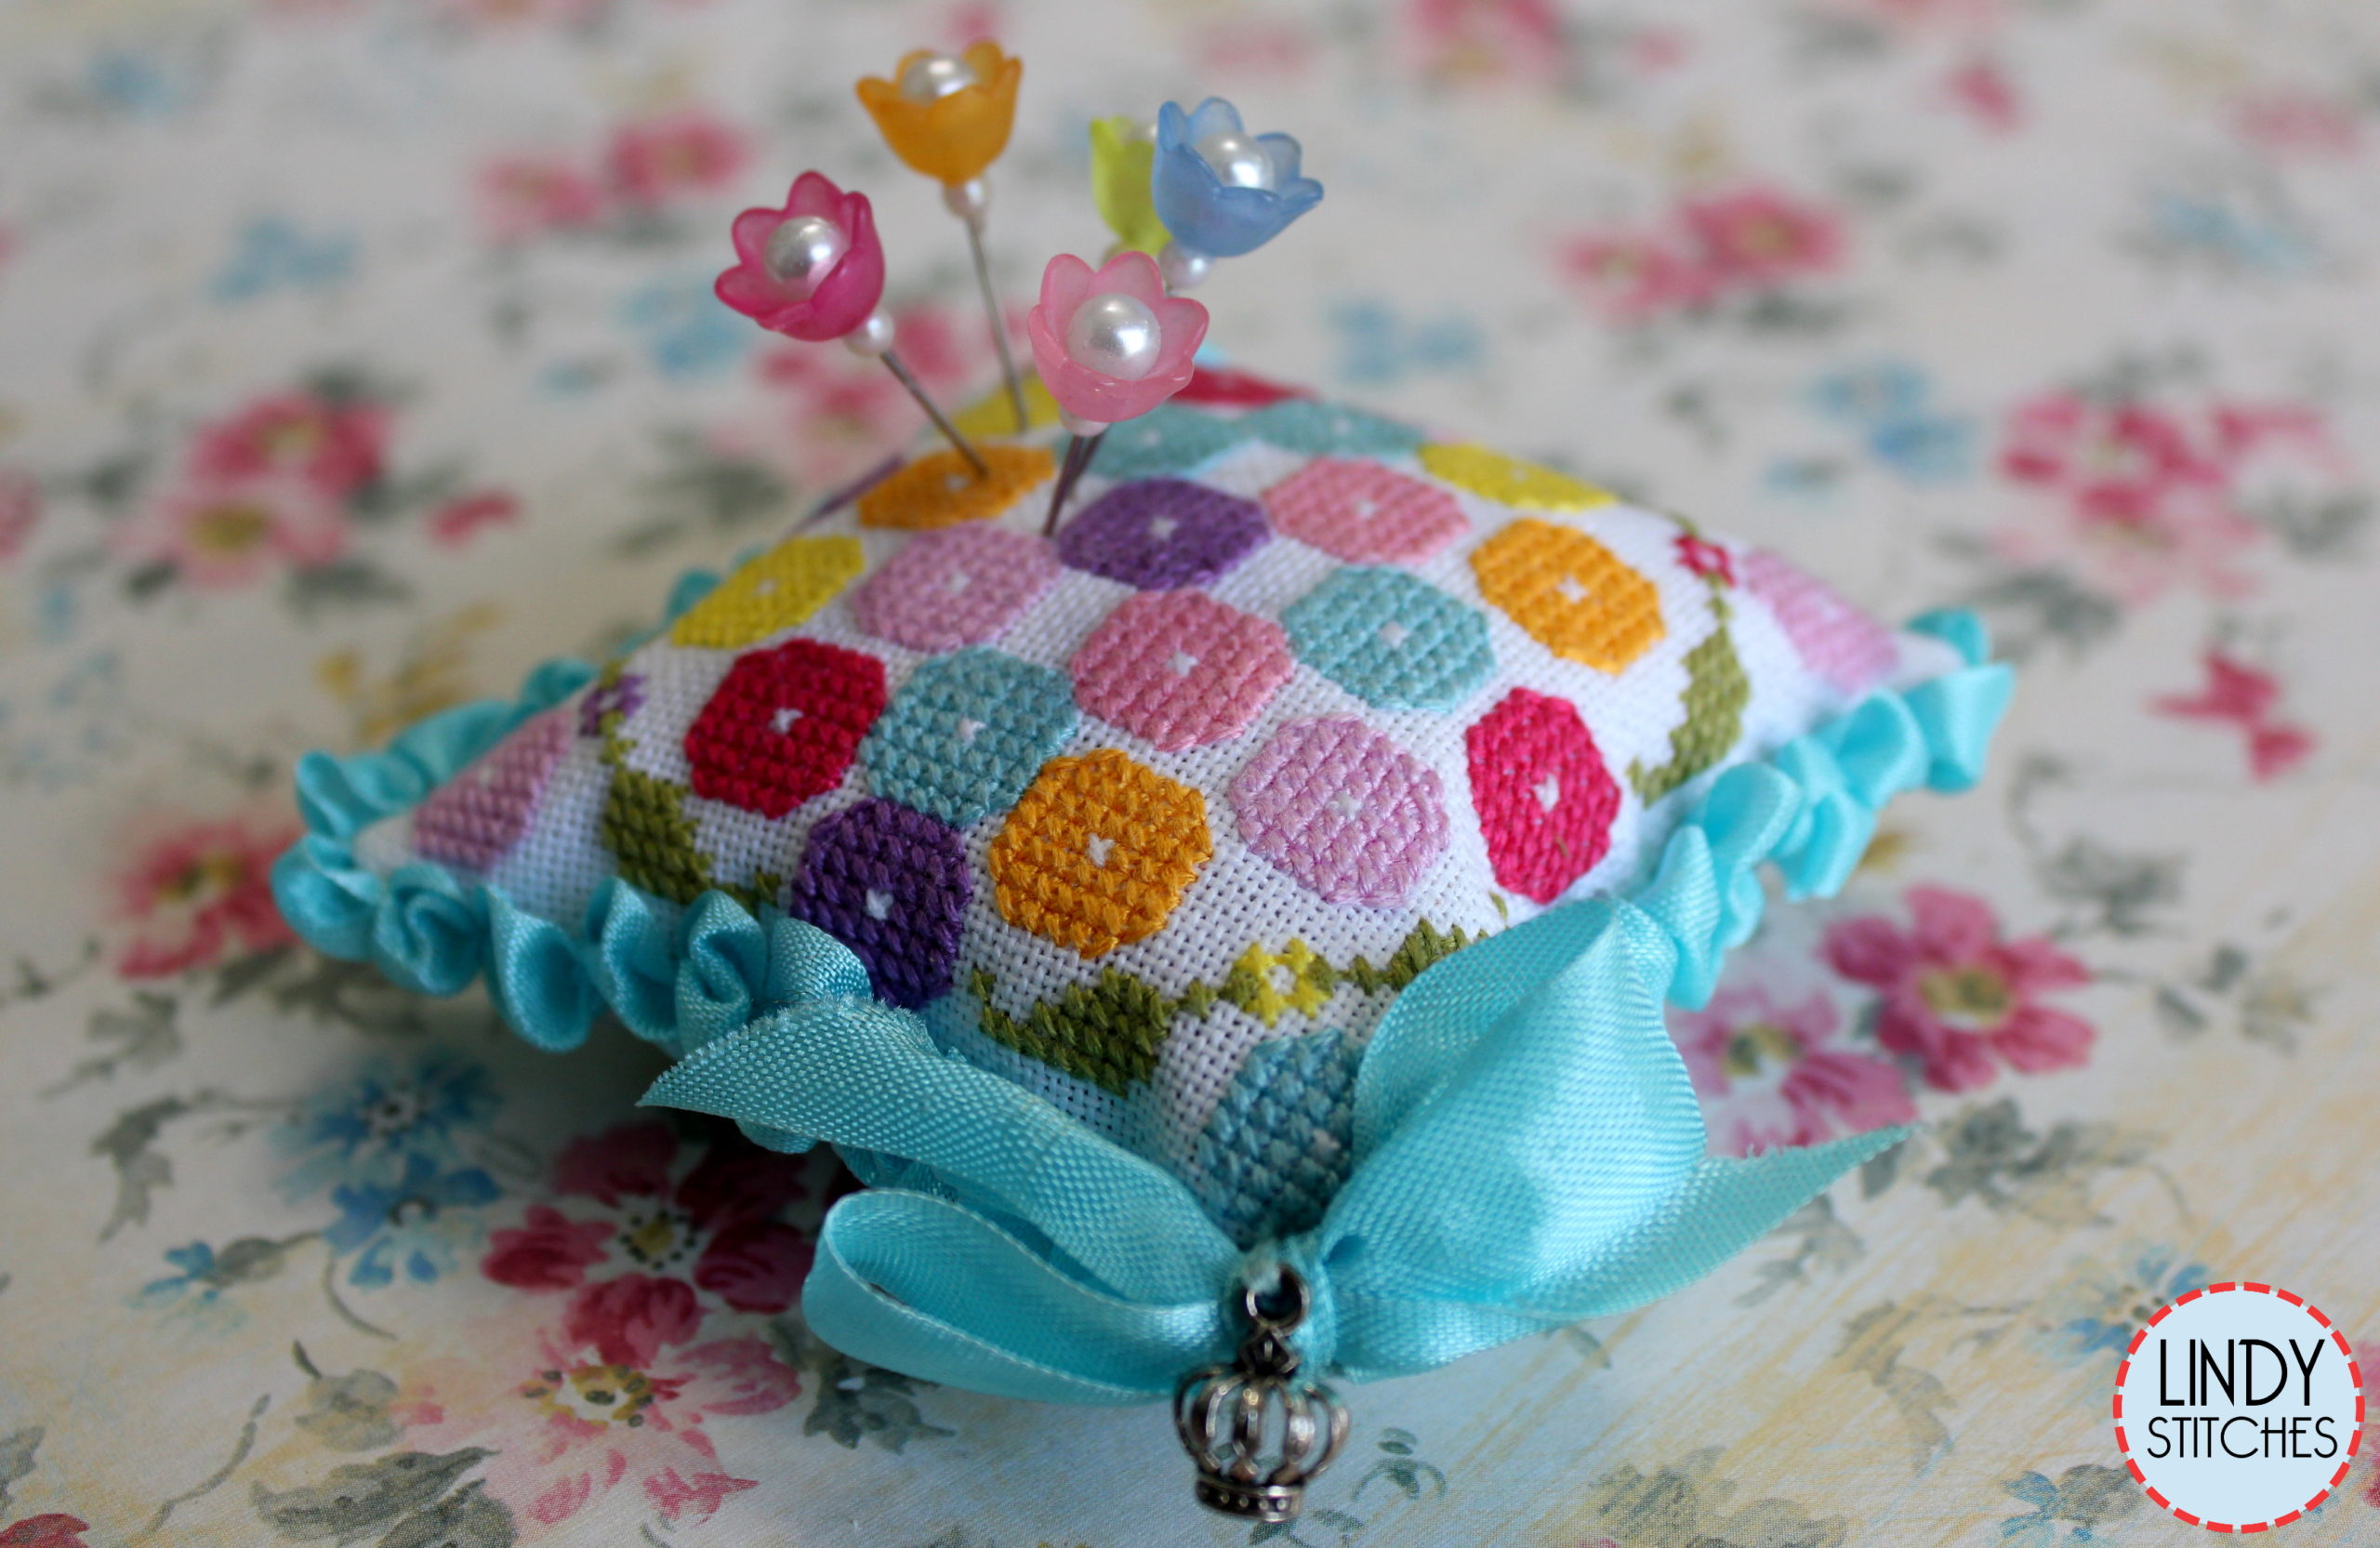 Penelope's Posies Pincushion - Lindy Stitches